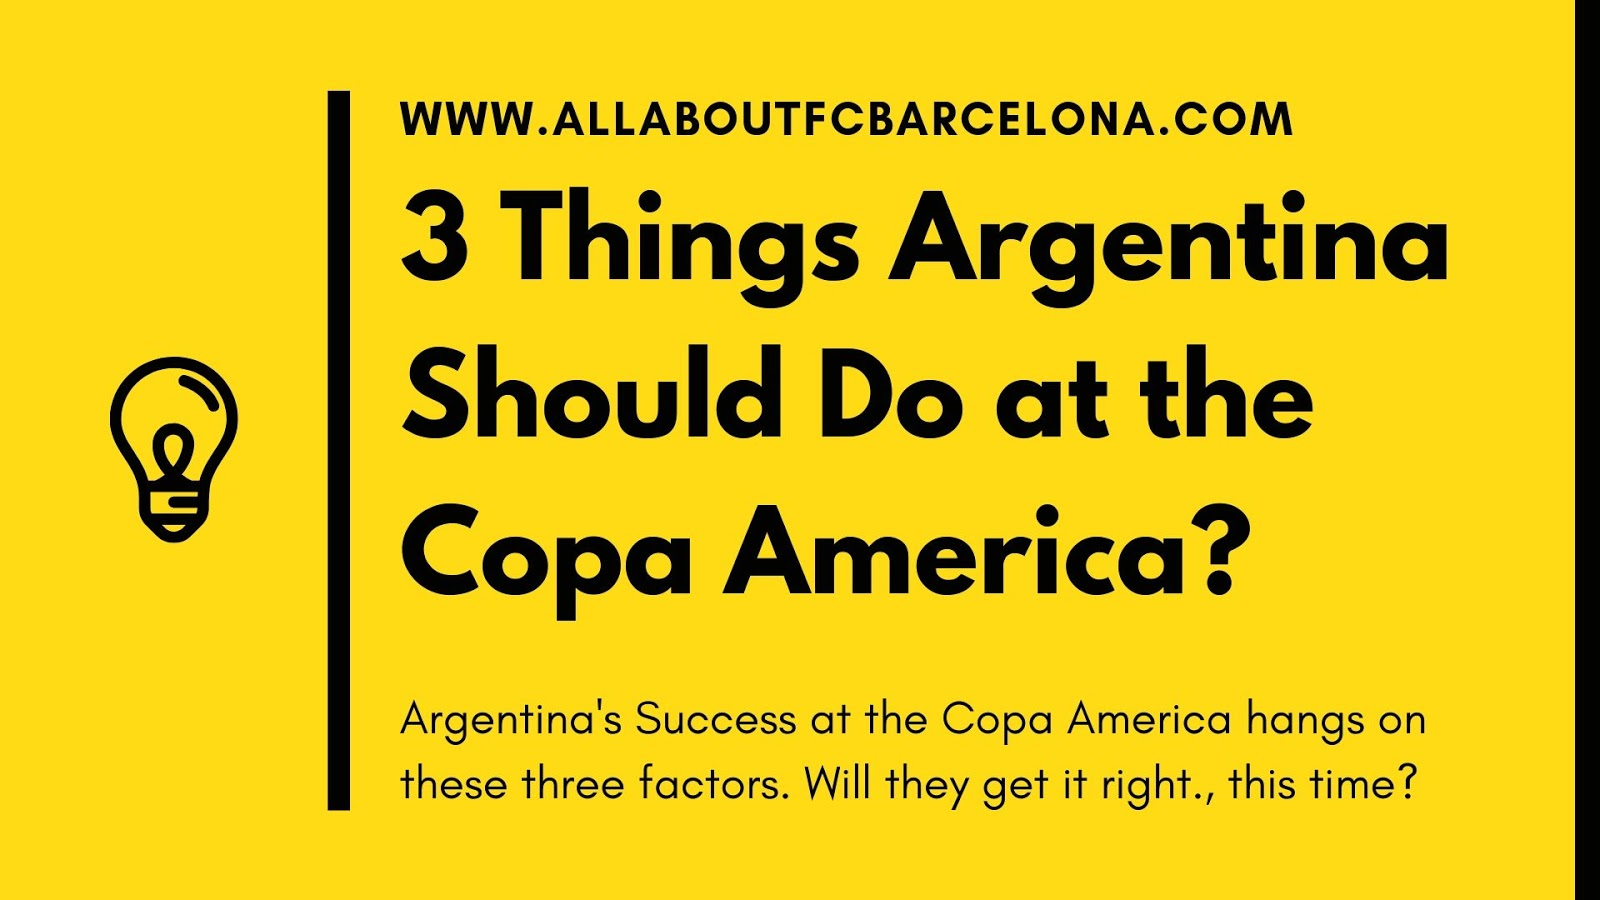 3 Things Argentina Should Do to Triumph at the Copa America 2019?